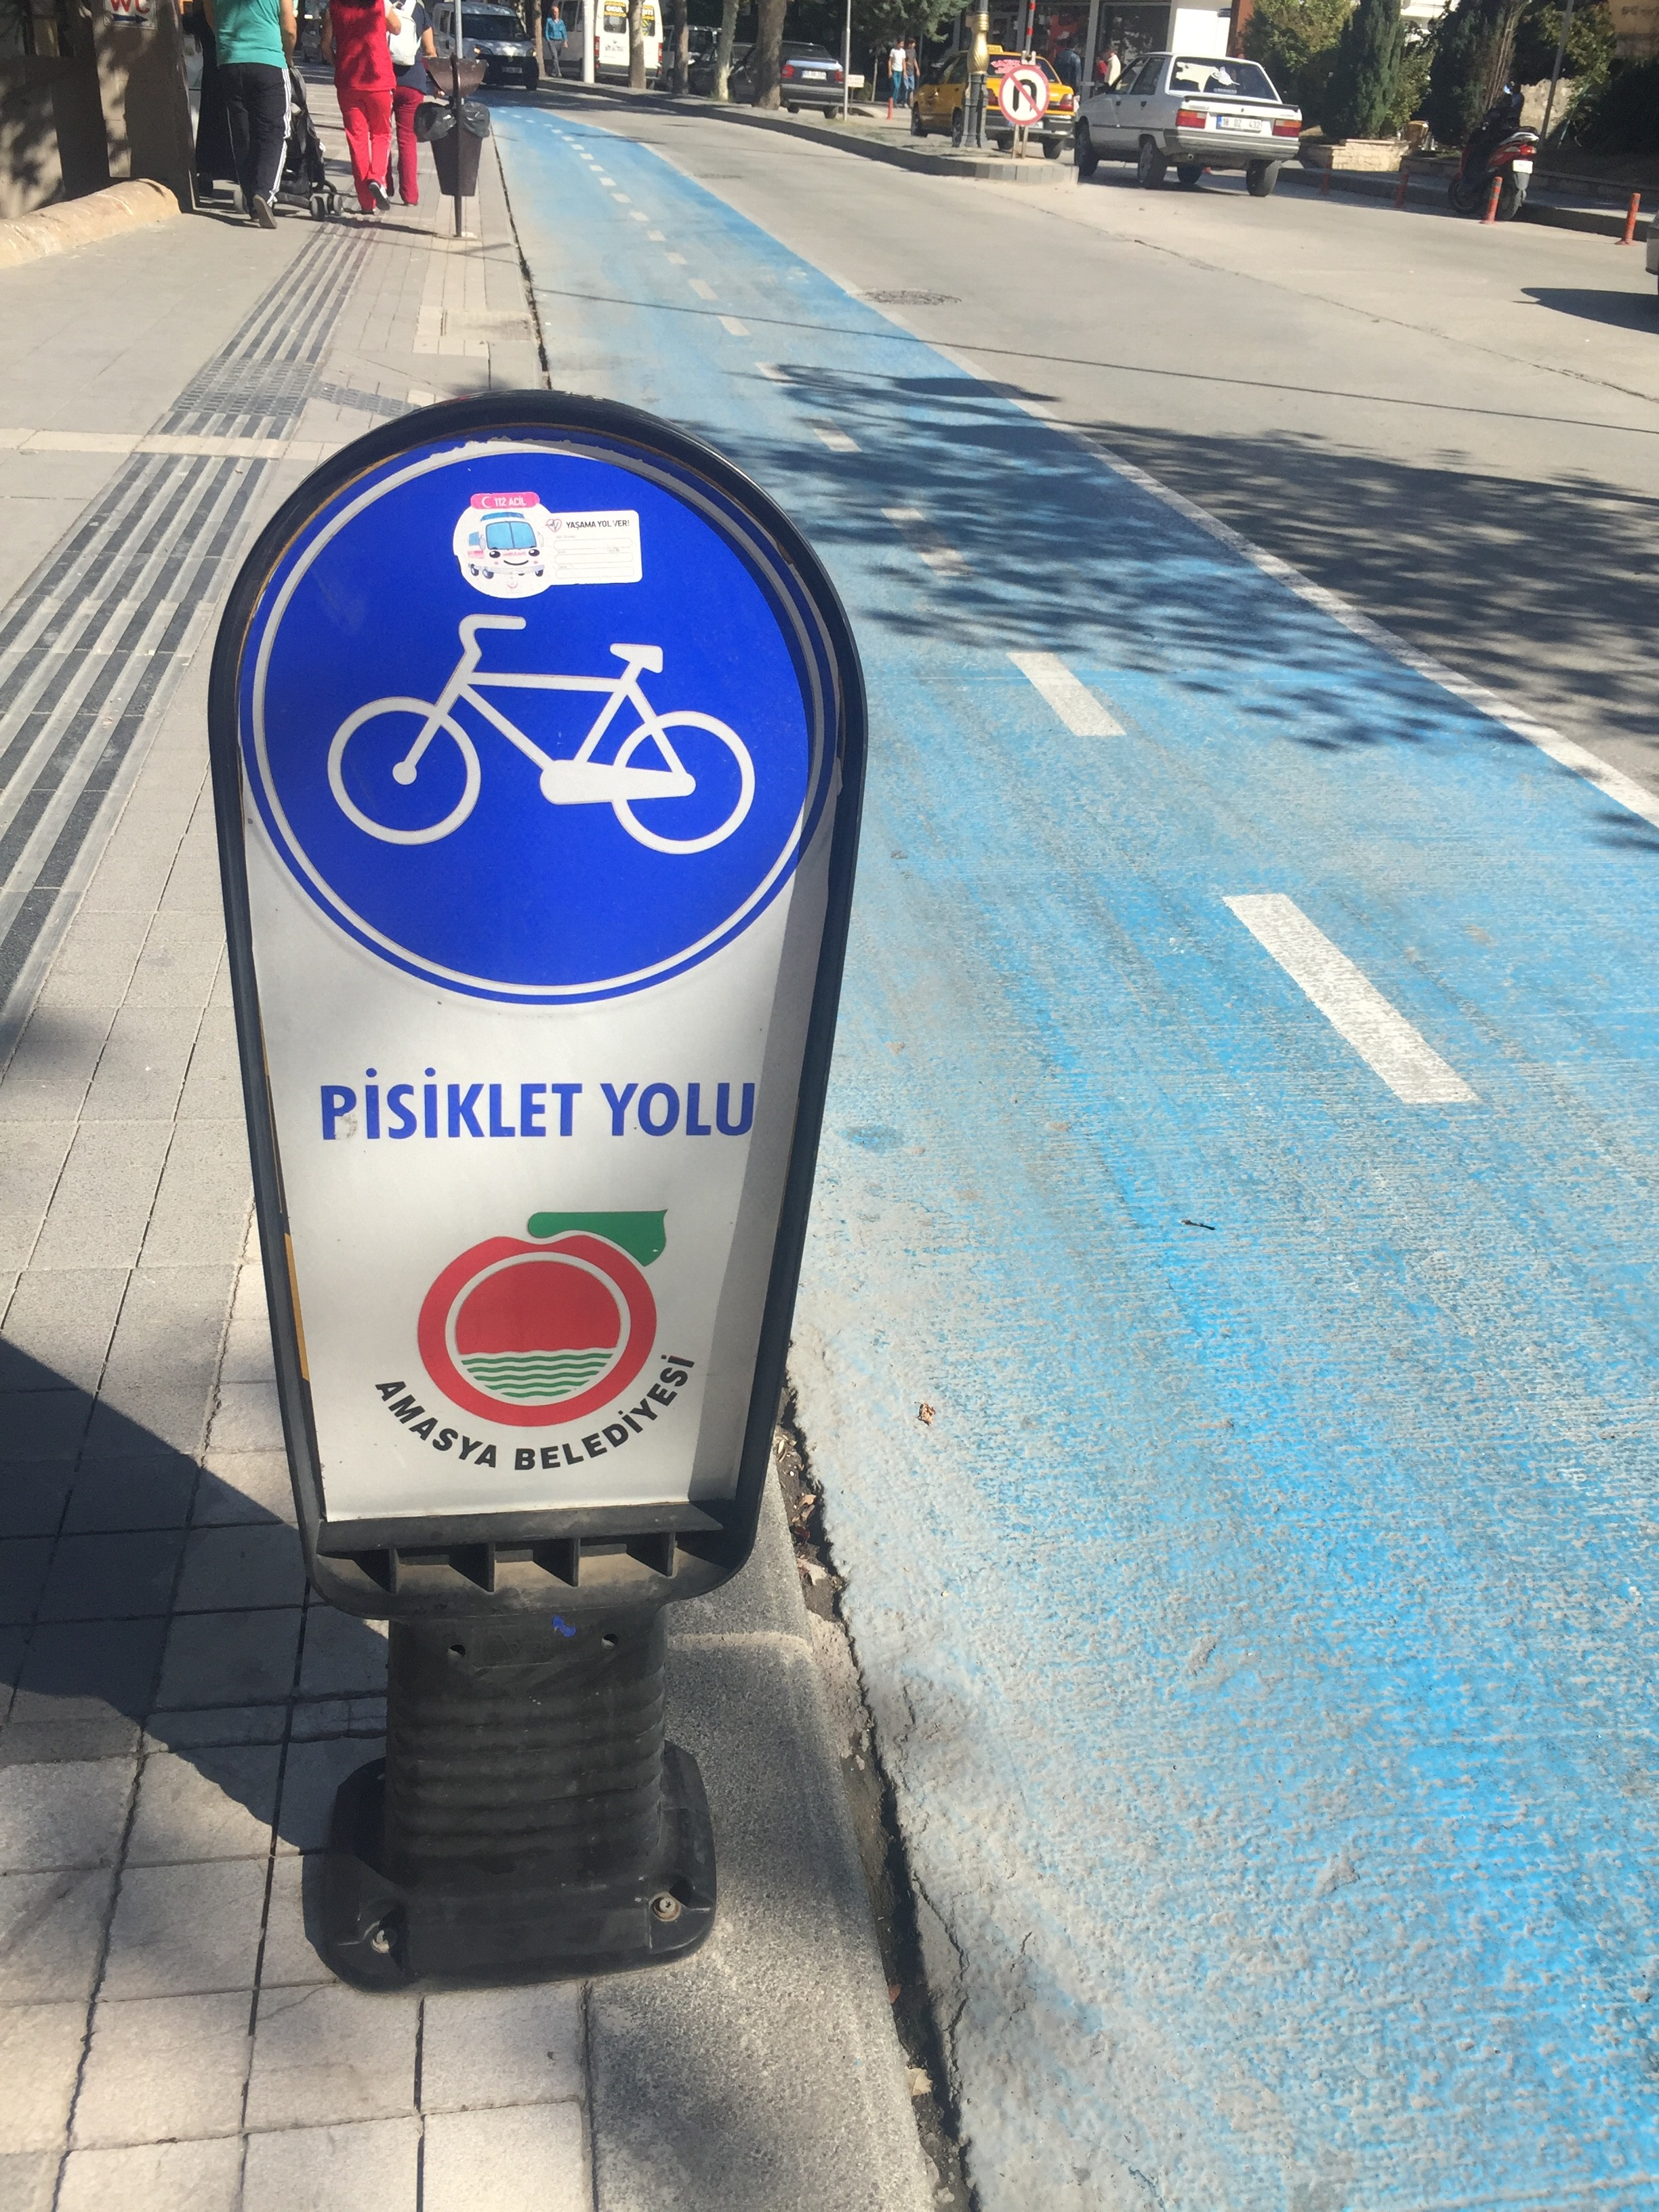 They actually have a bike lane here!